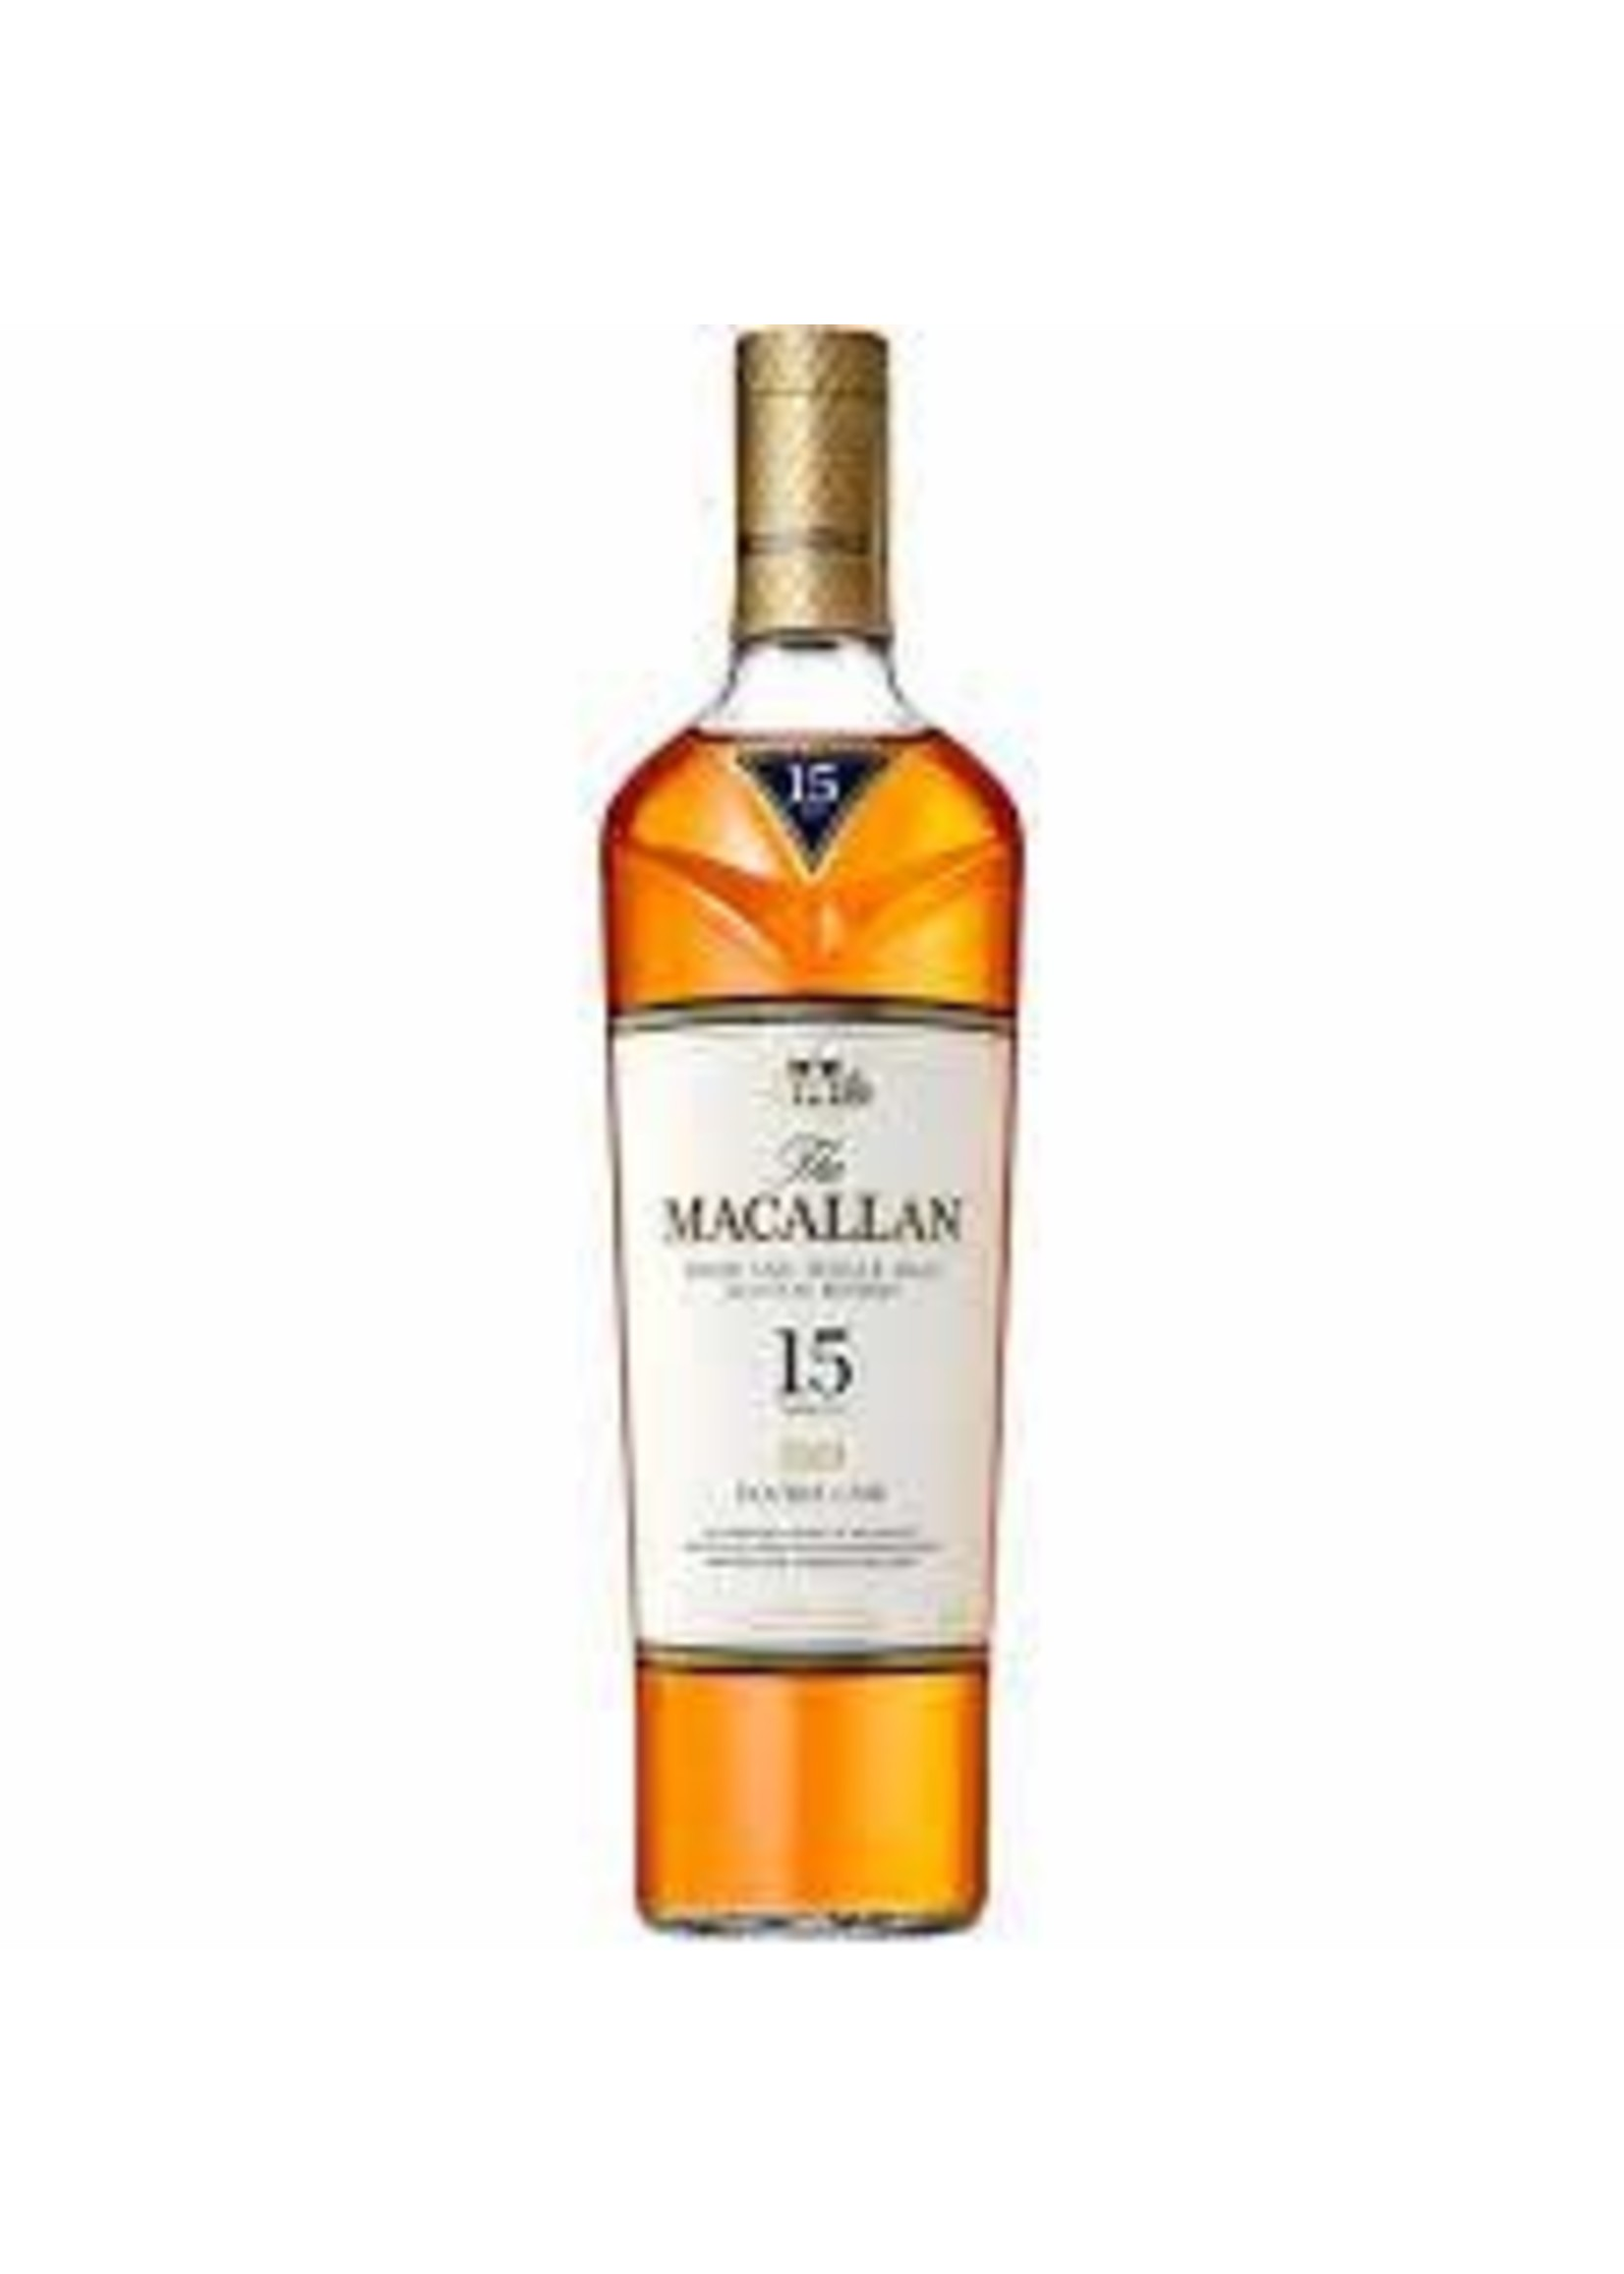 The Macallan Scotch 15 Year Double Cask 86 Proof 750ml